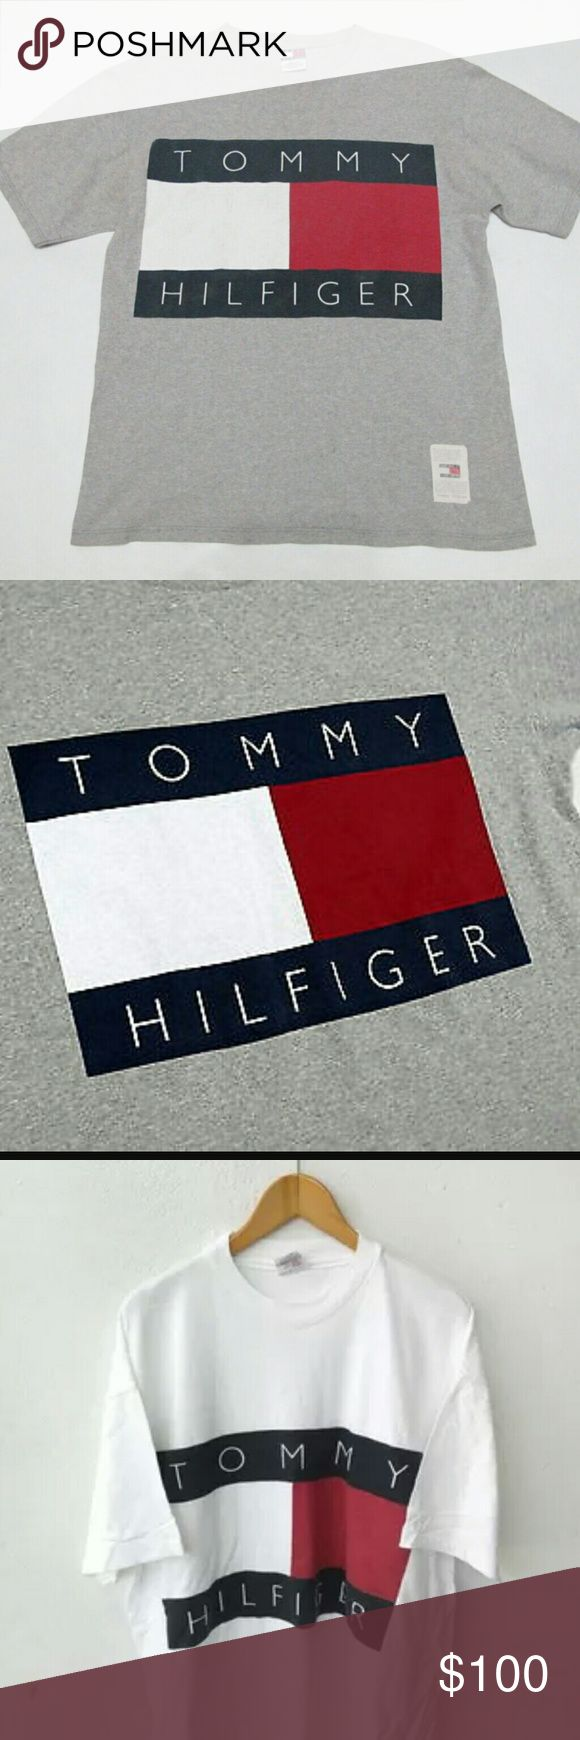 90s Rare Vintage Tommy Hilfiger T-Shirt 90s Vintage, Big Logo, Grey, Unisex L or XL! Tommy Hilfiger Tops Tees - Short Sleeve